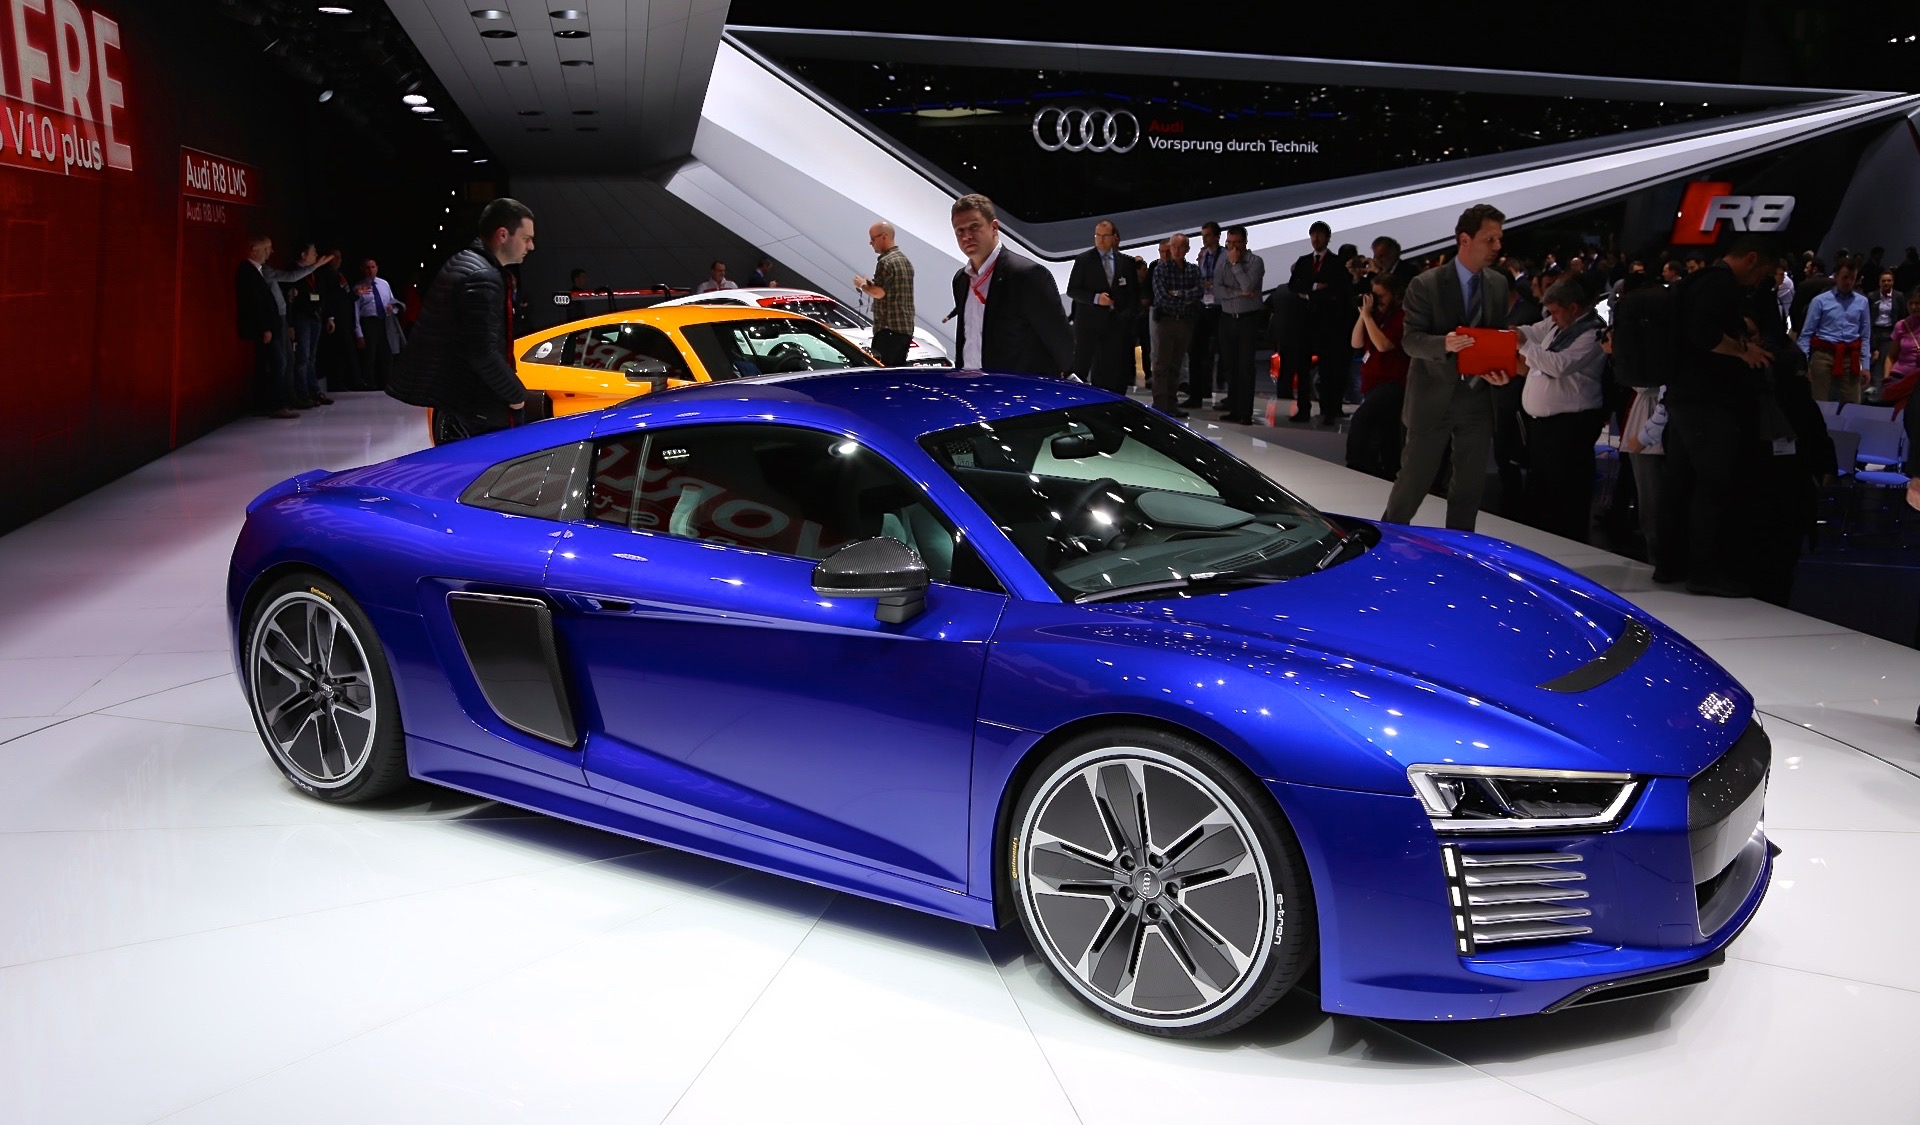 Audi R Etron AllElectric Sports Car Live Photos From Geneva - Audi r8 etron